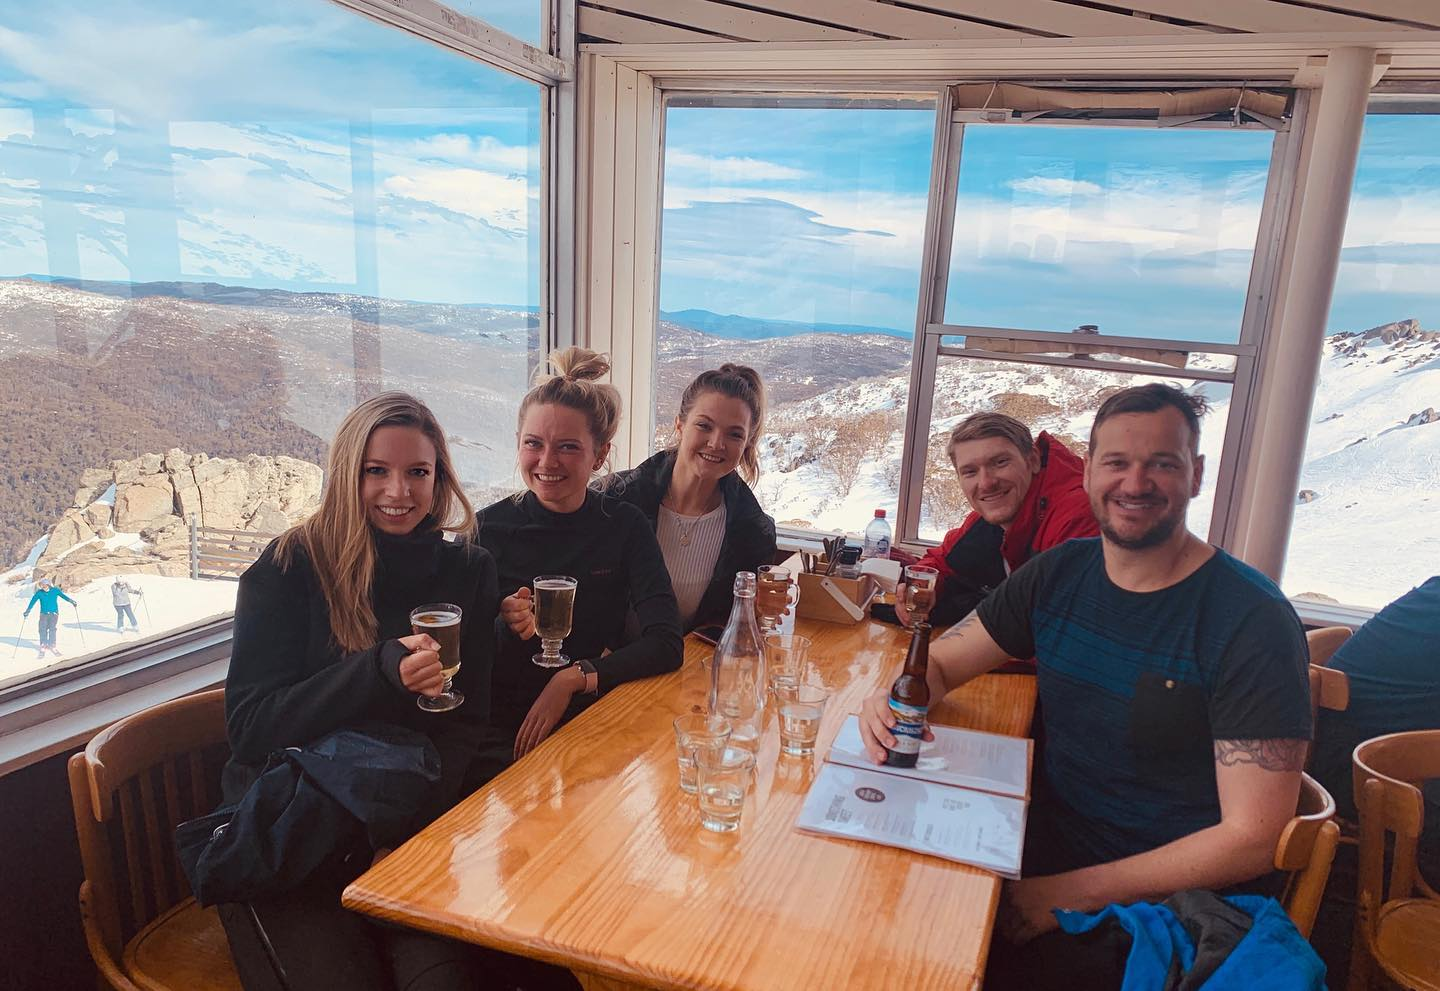 Amazing weekend in Thredbo with the team!!! Keep kicking goals ⛷